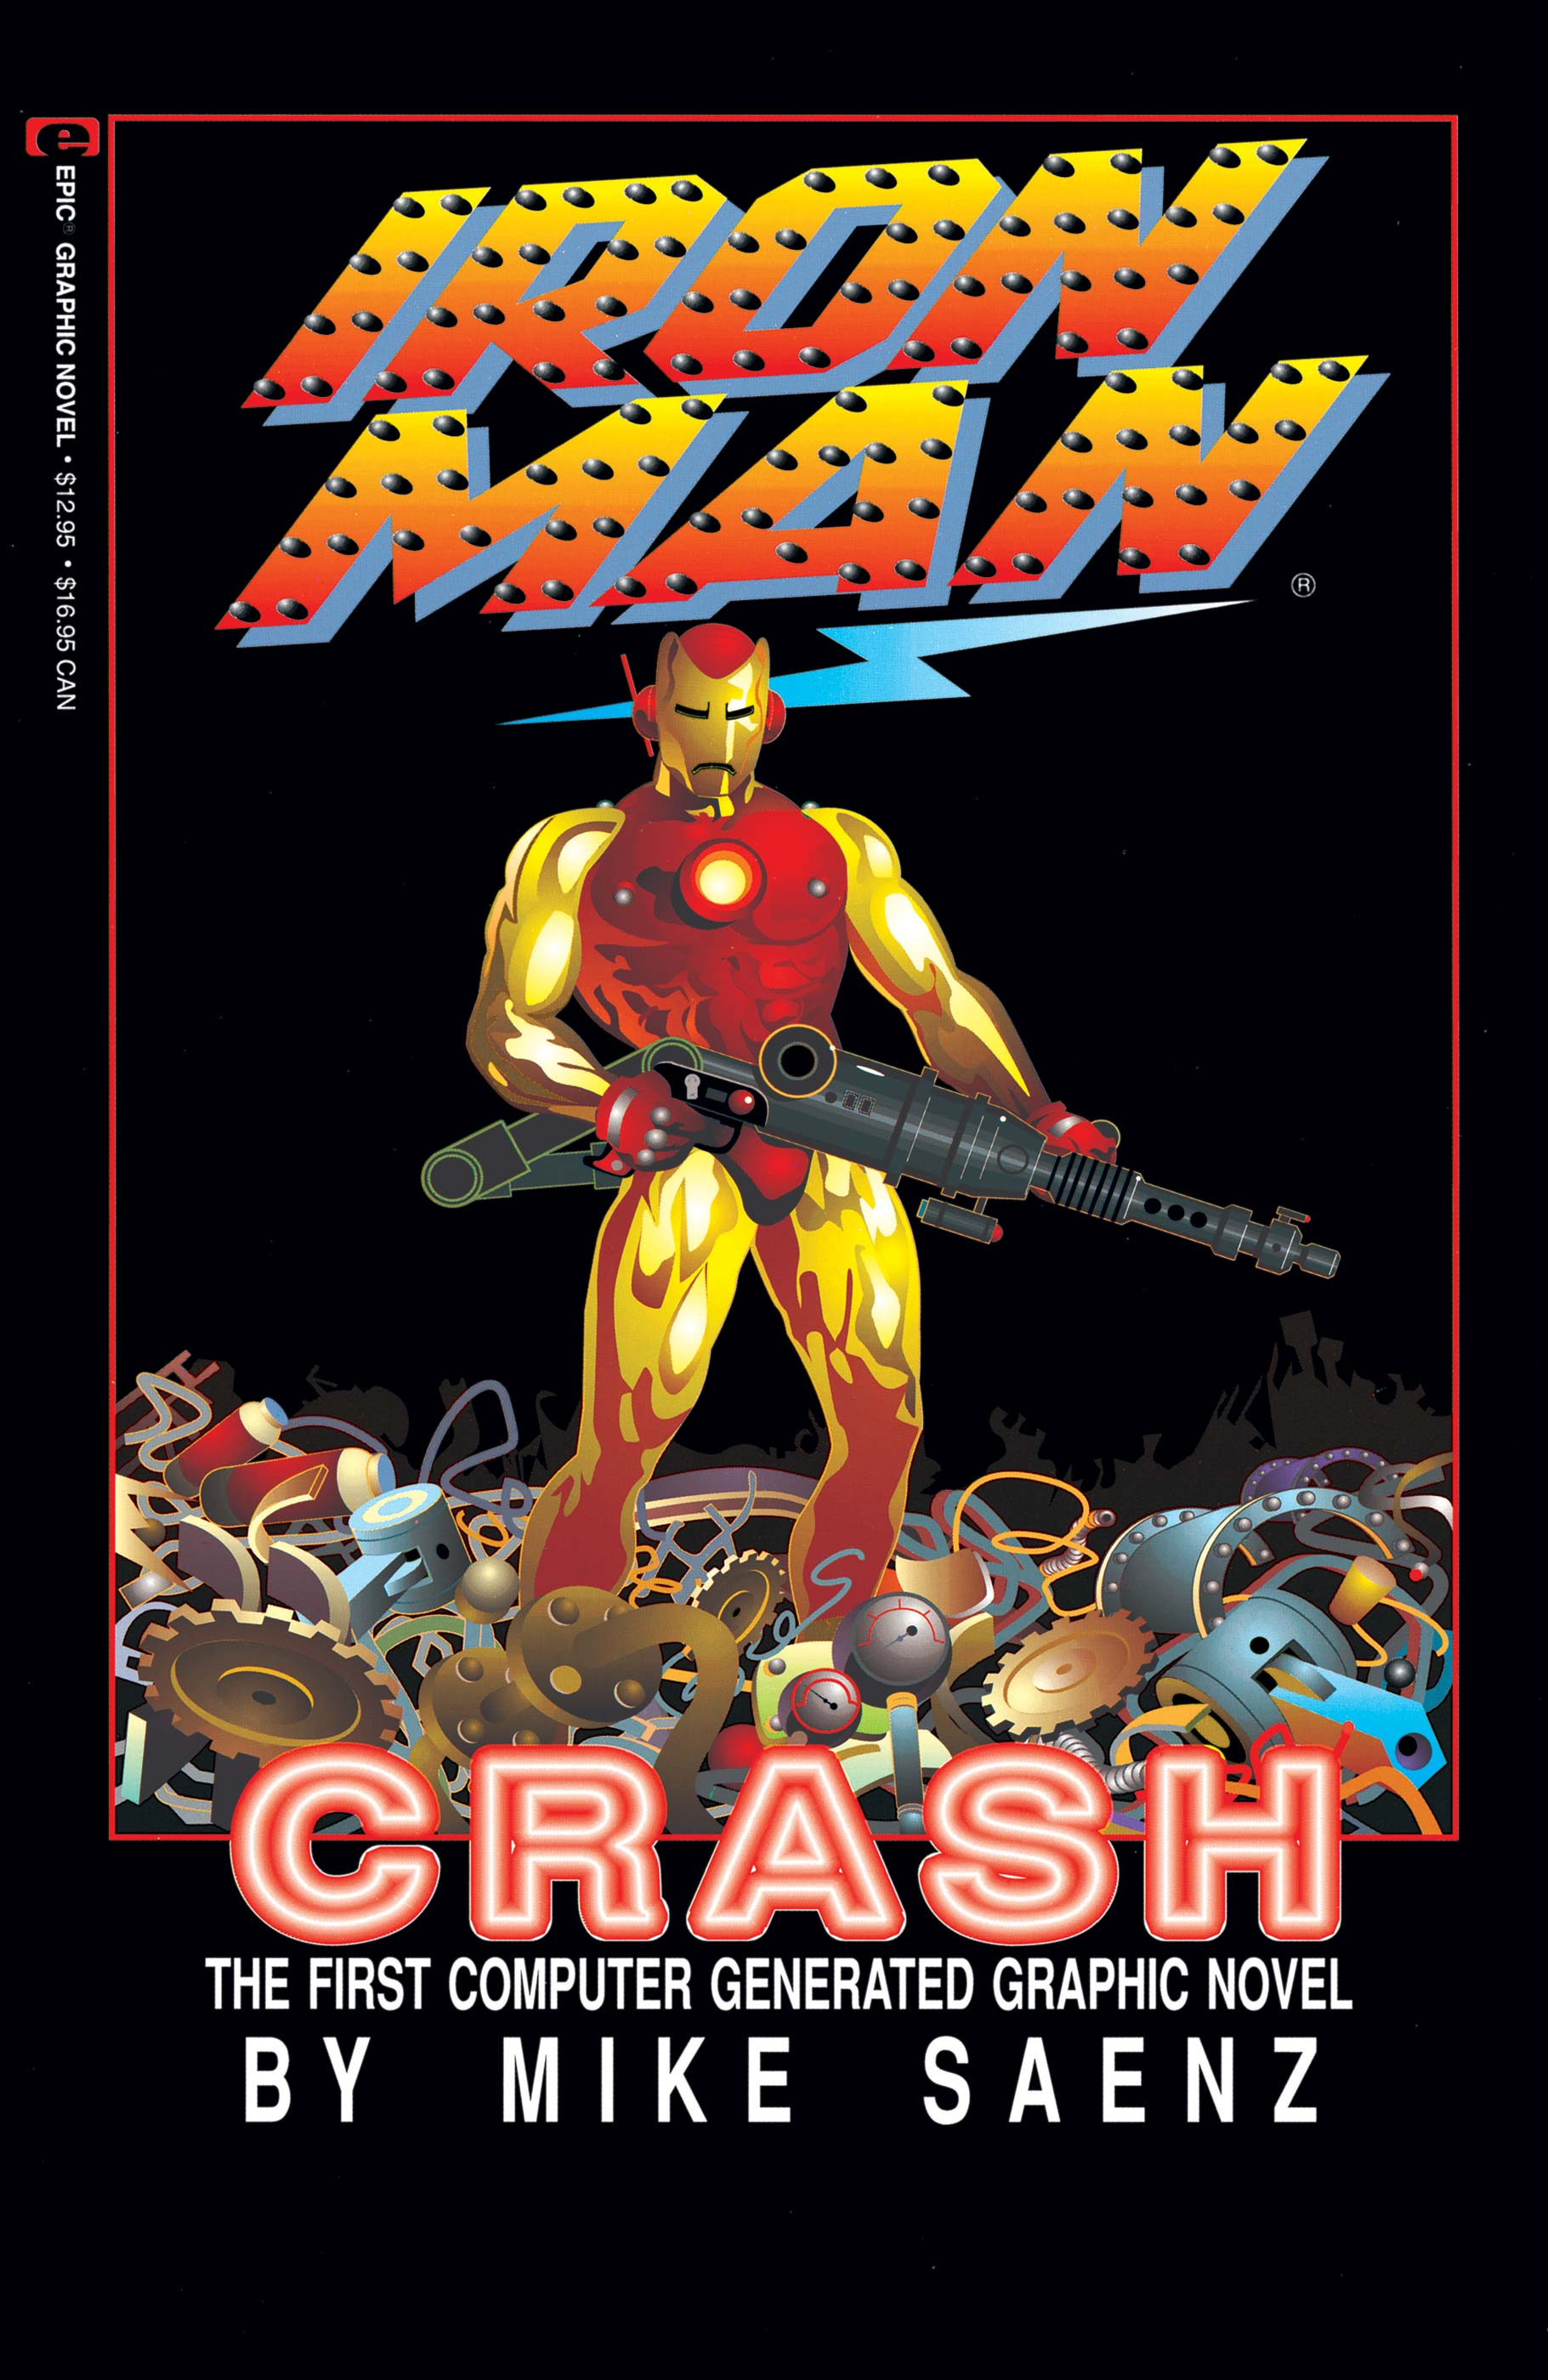 Iron Man: Crash (1987)